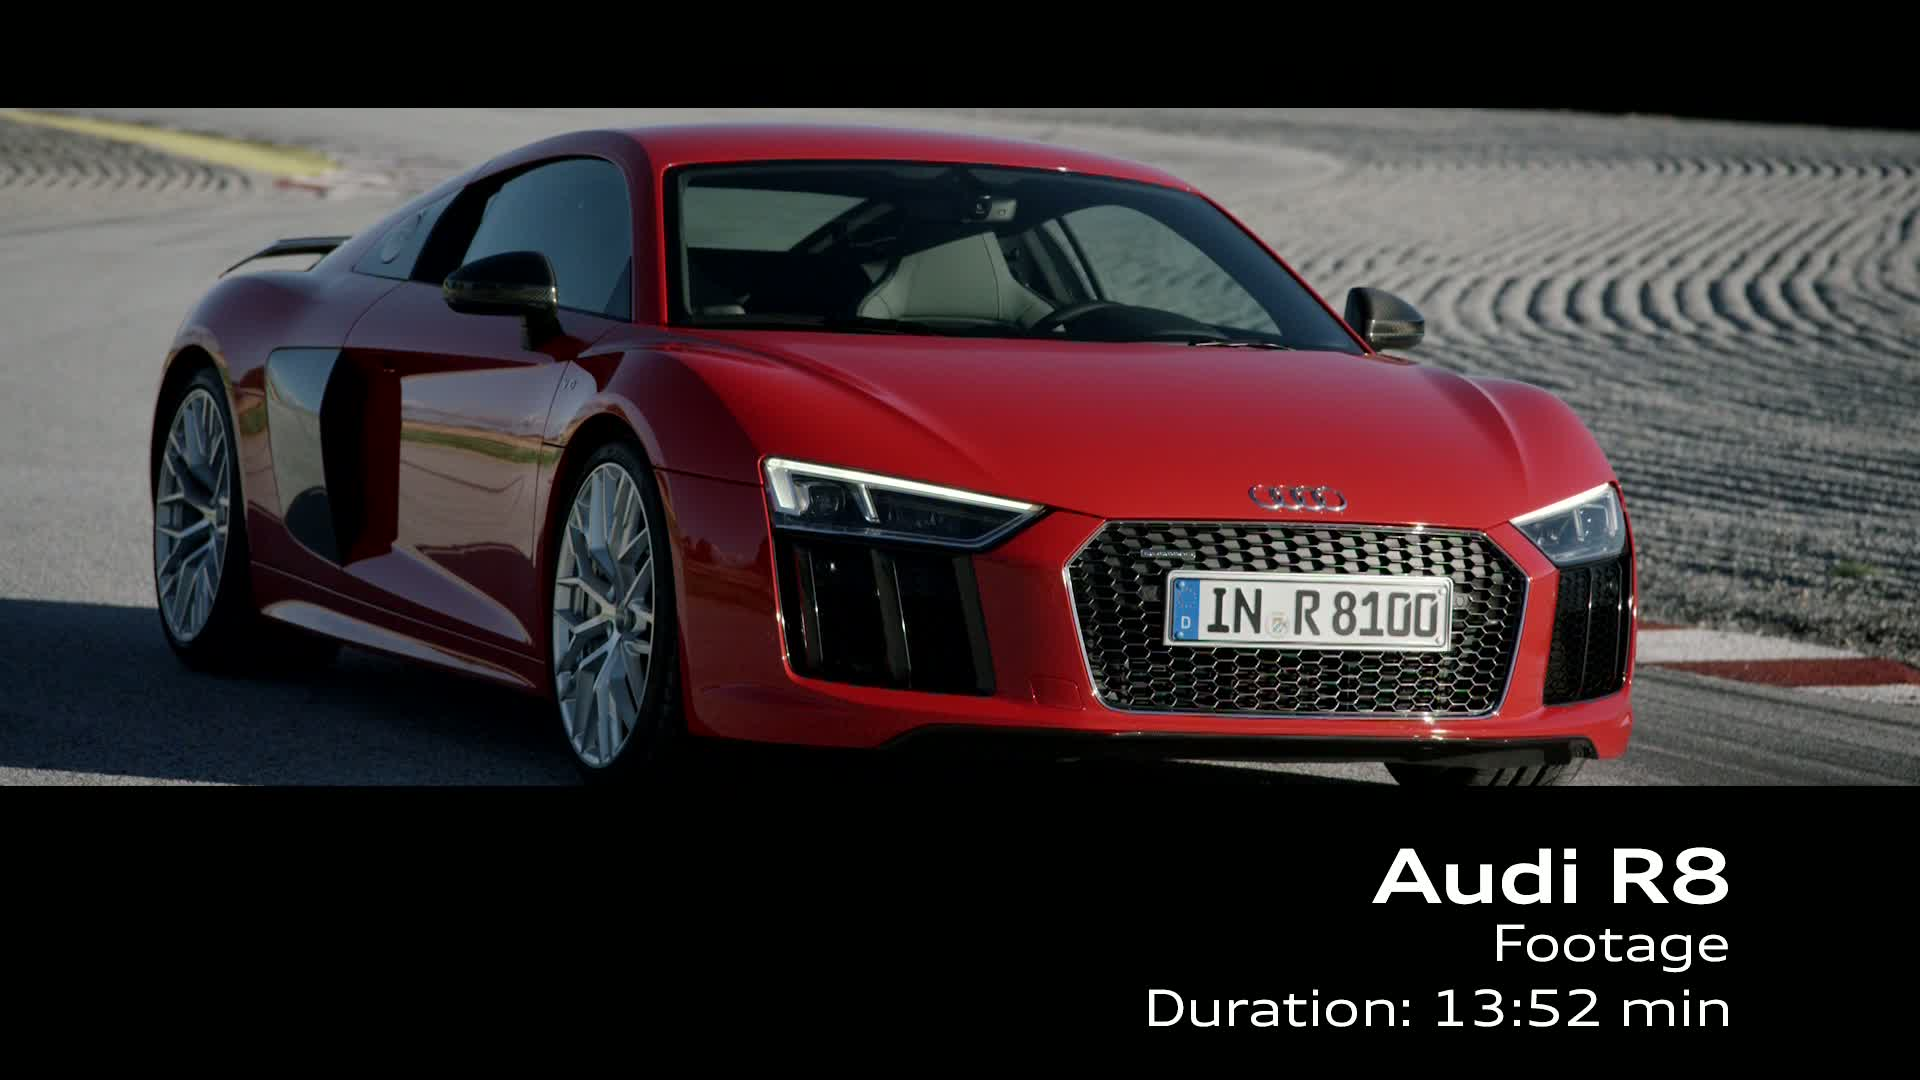 Der Audi R8 V10 plus - Footage